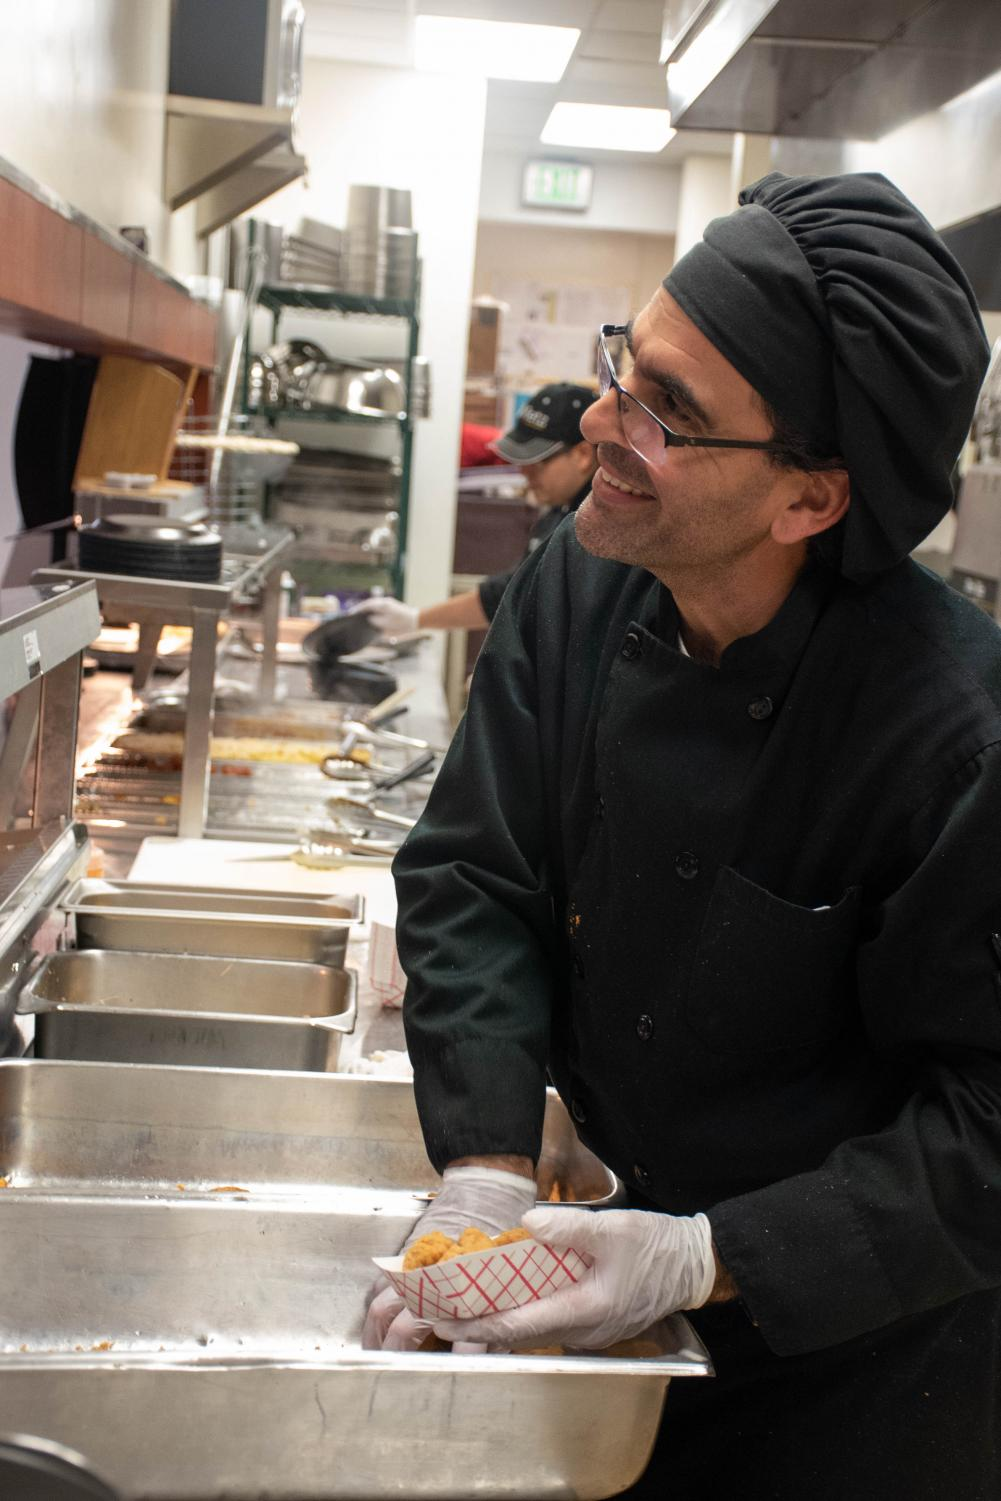 Chris serves up chicken tenders and smiles to students in the Grille during Upper School lunch. He said he appreciates the students and their friendly nature.